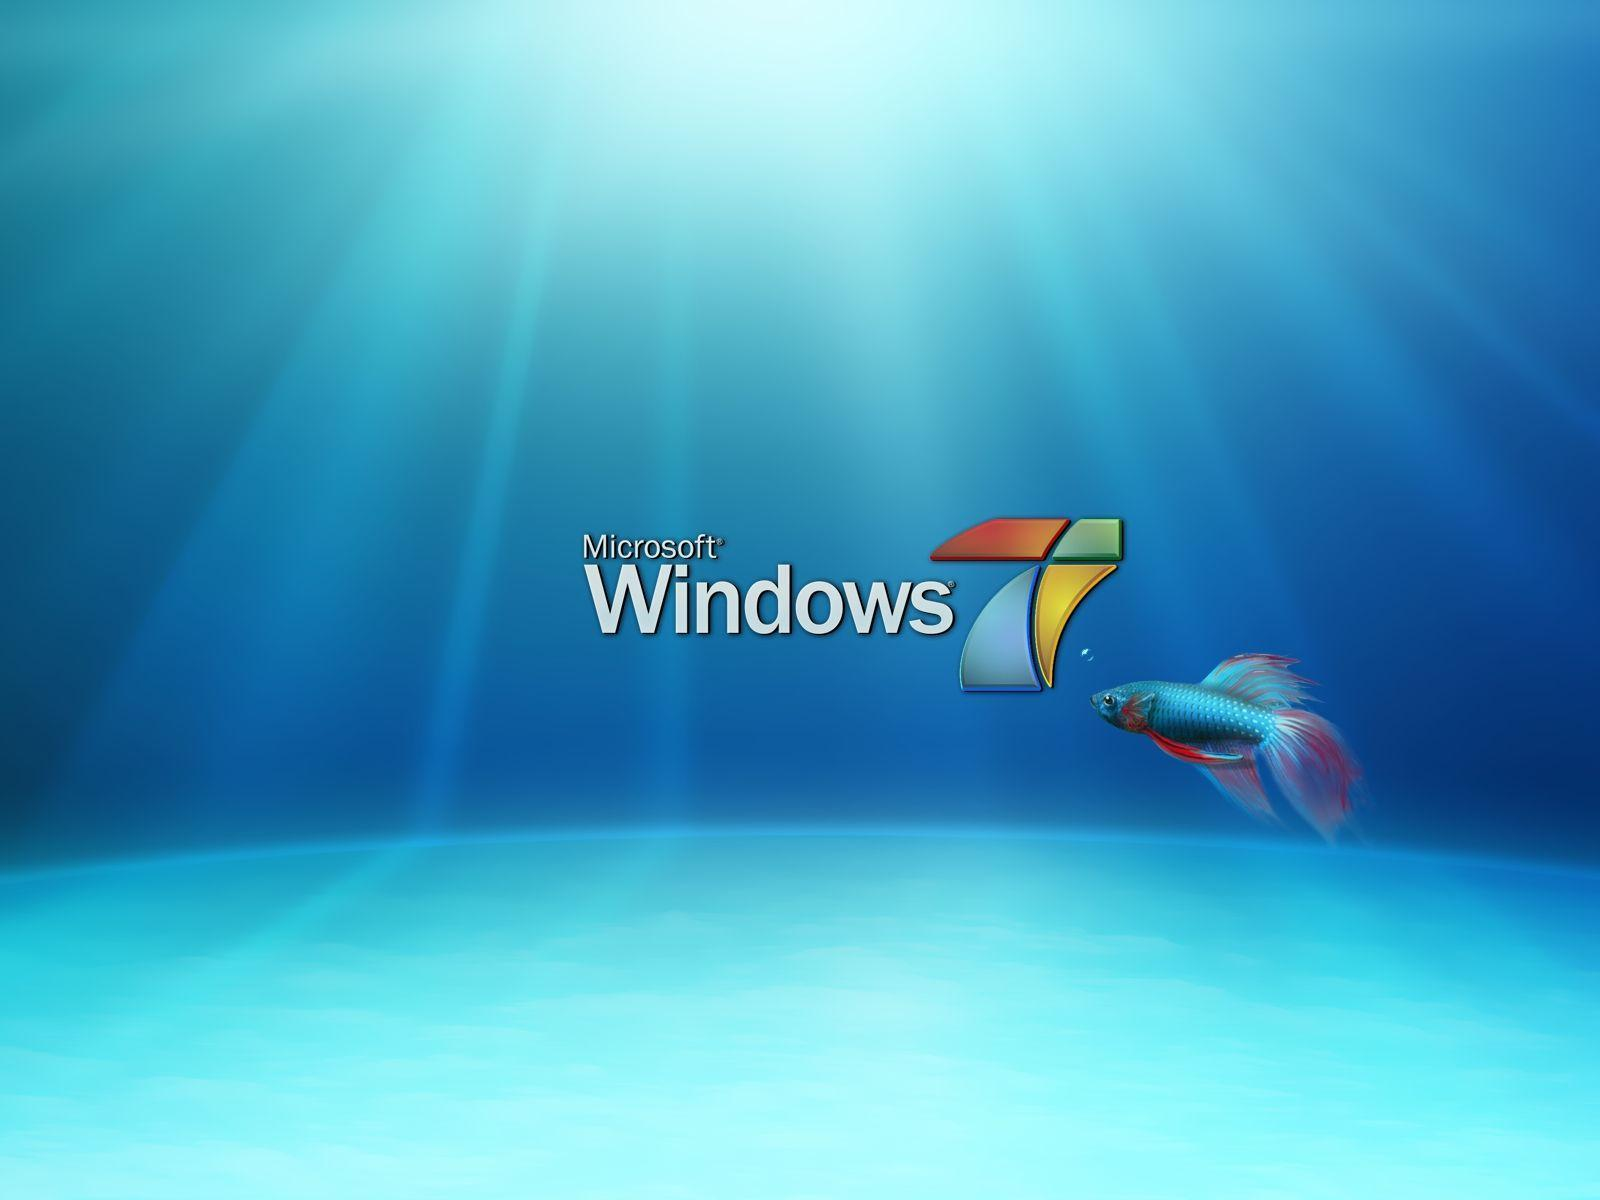 Wallpapers For > Moving Fish Wallpapers For Windows 7